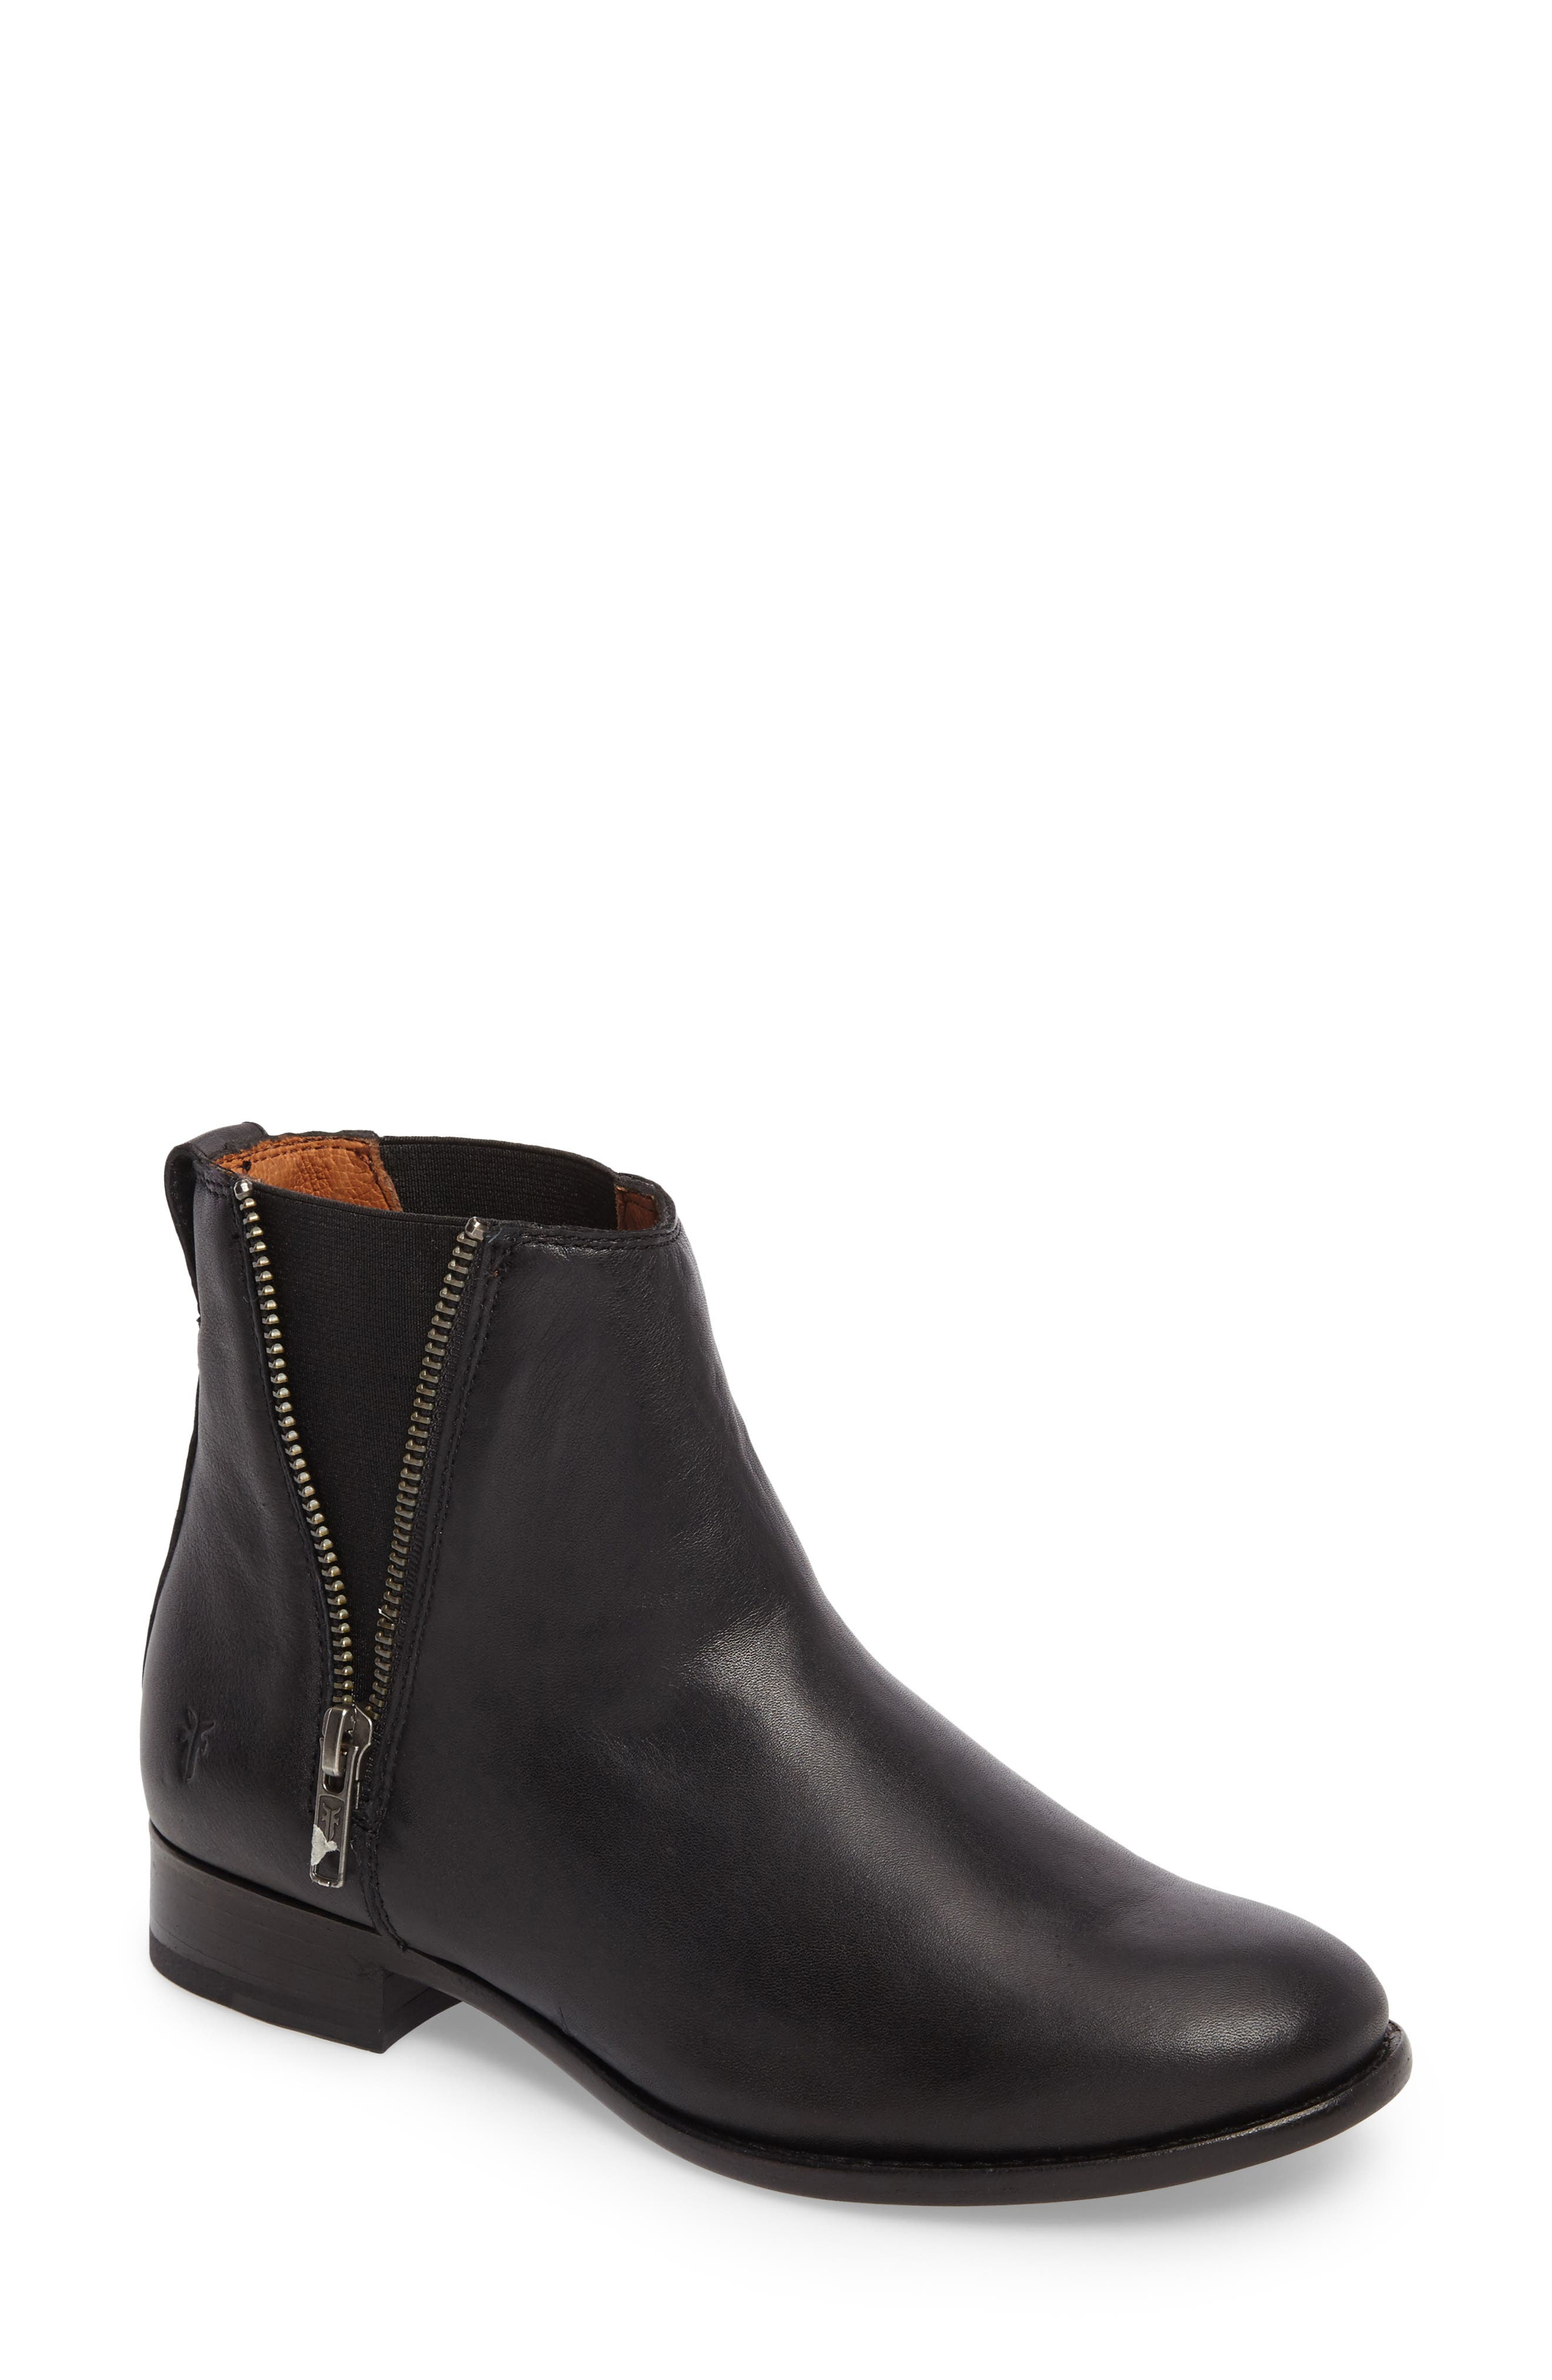 CARLY CHELSEA BOOT